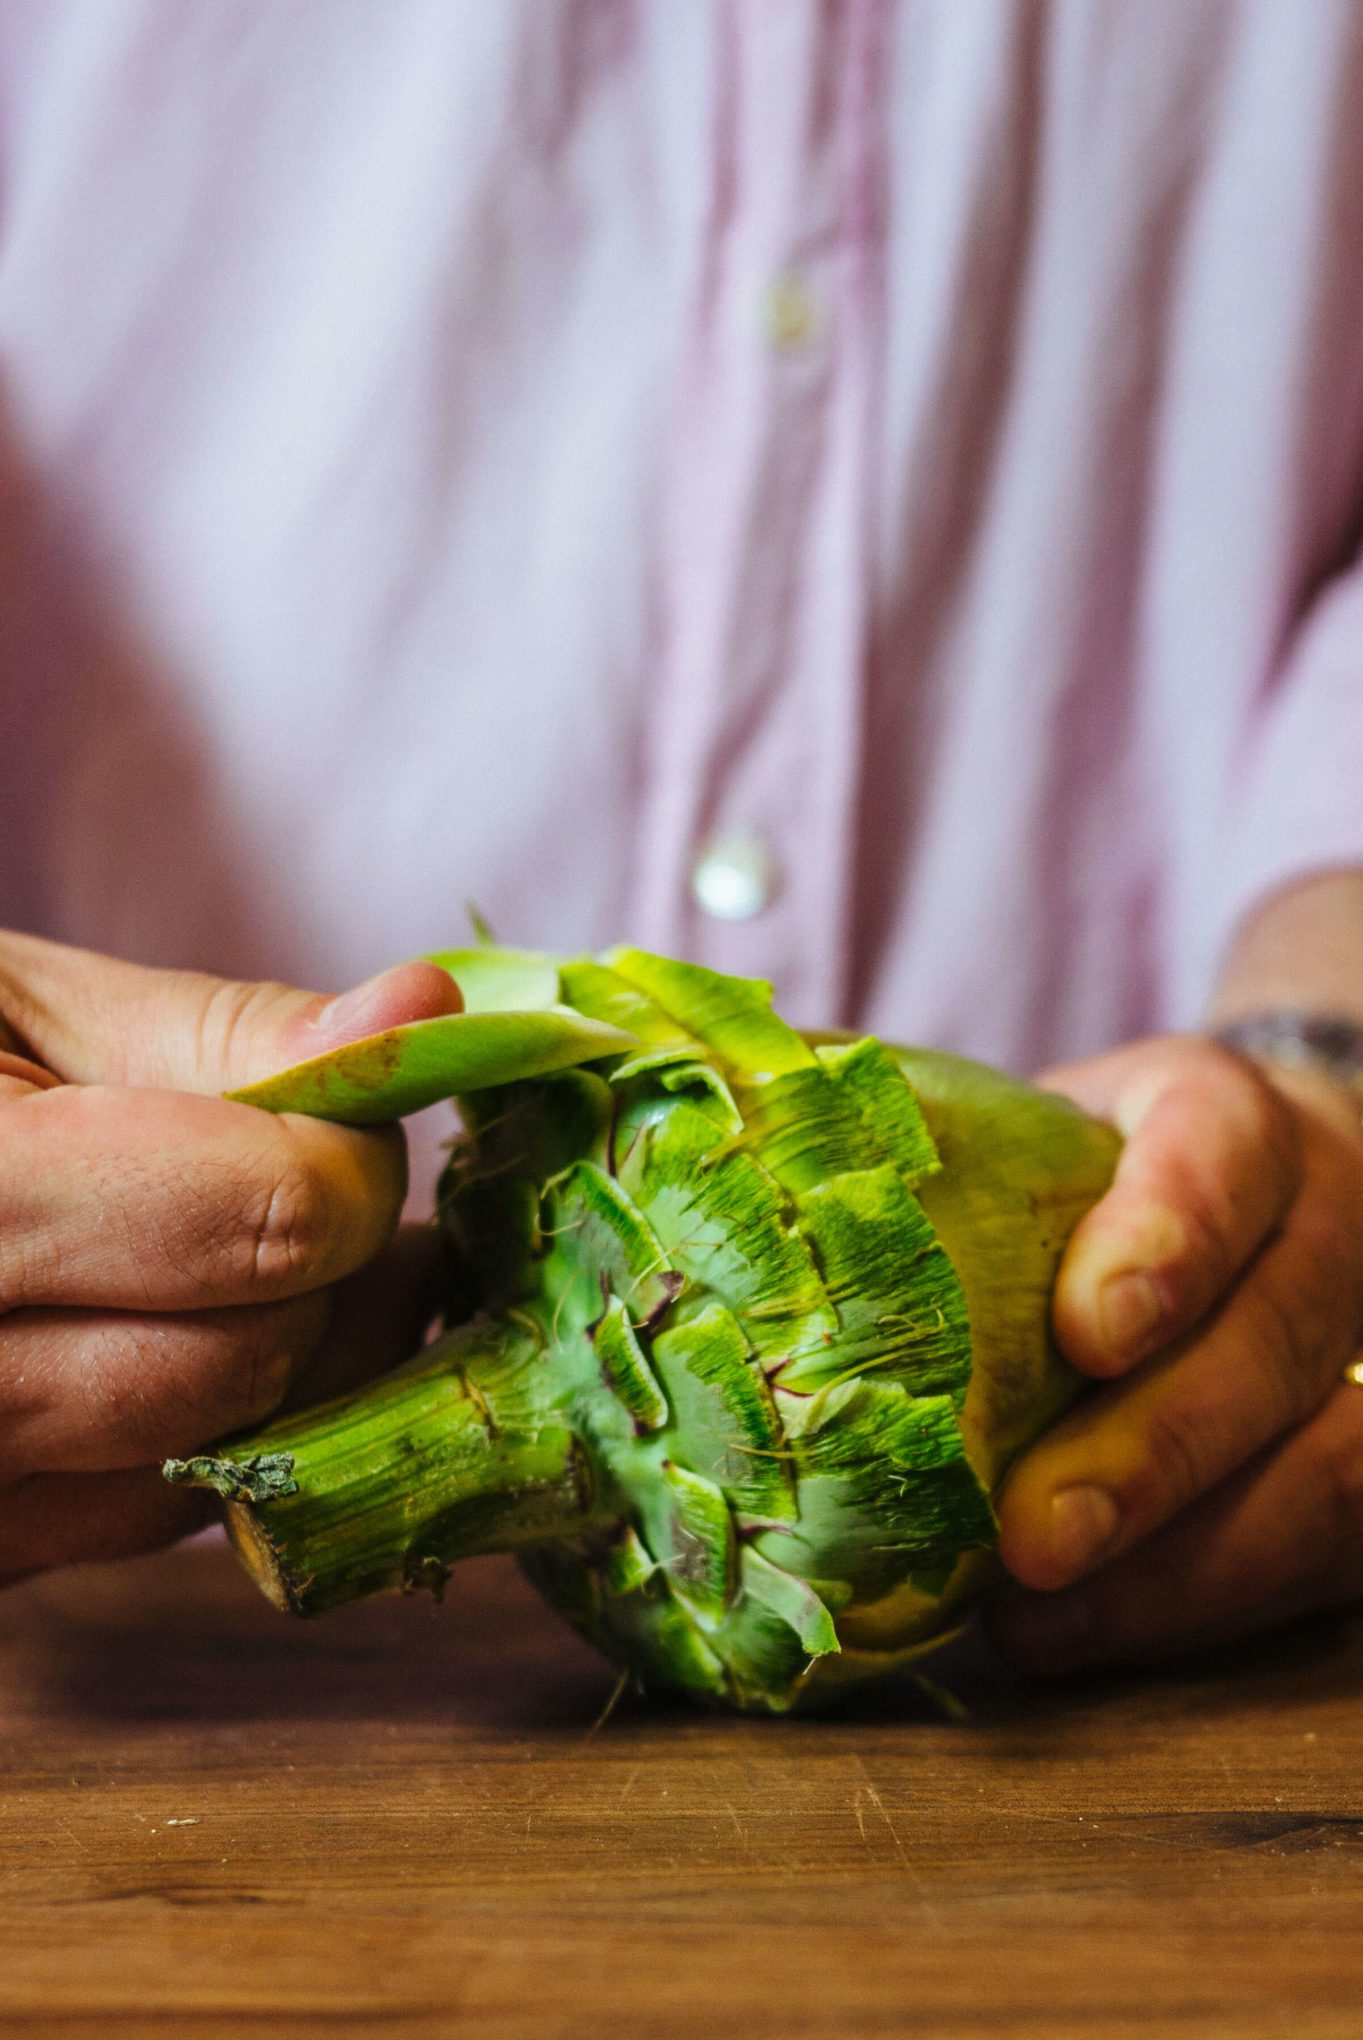 how to trim an artichoke - trim the leaves almost to the center